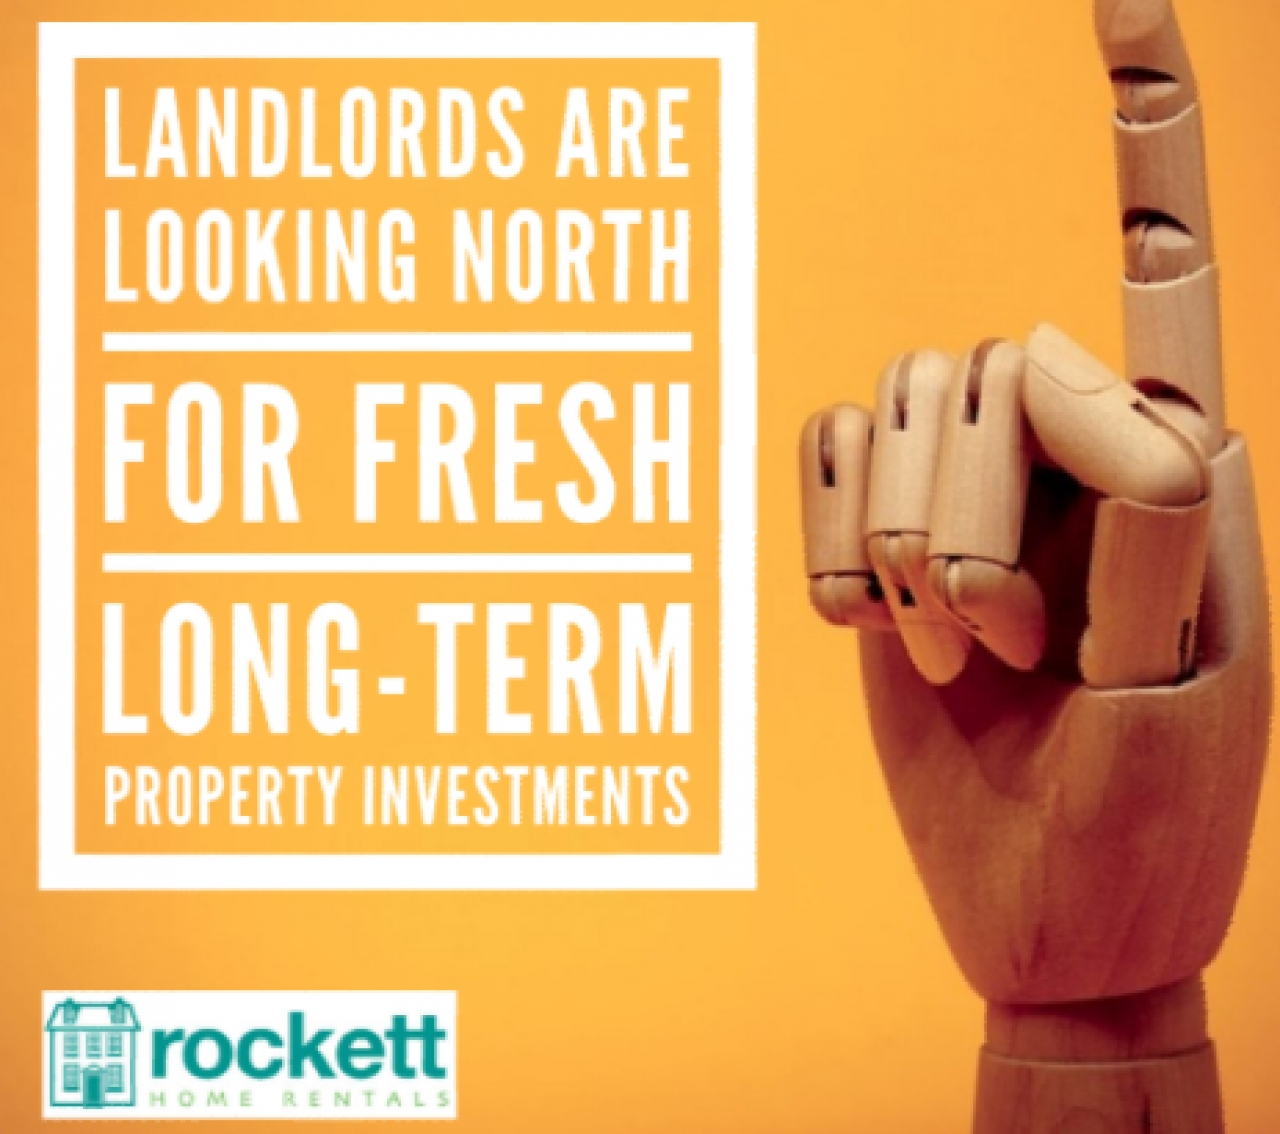 This Year, Landlords Are Looking North For Fresh Long-Term Property Investments